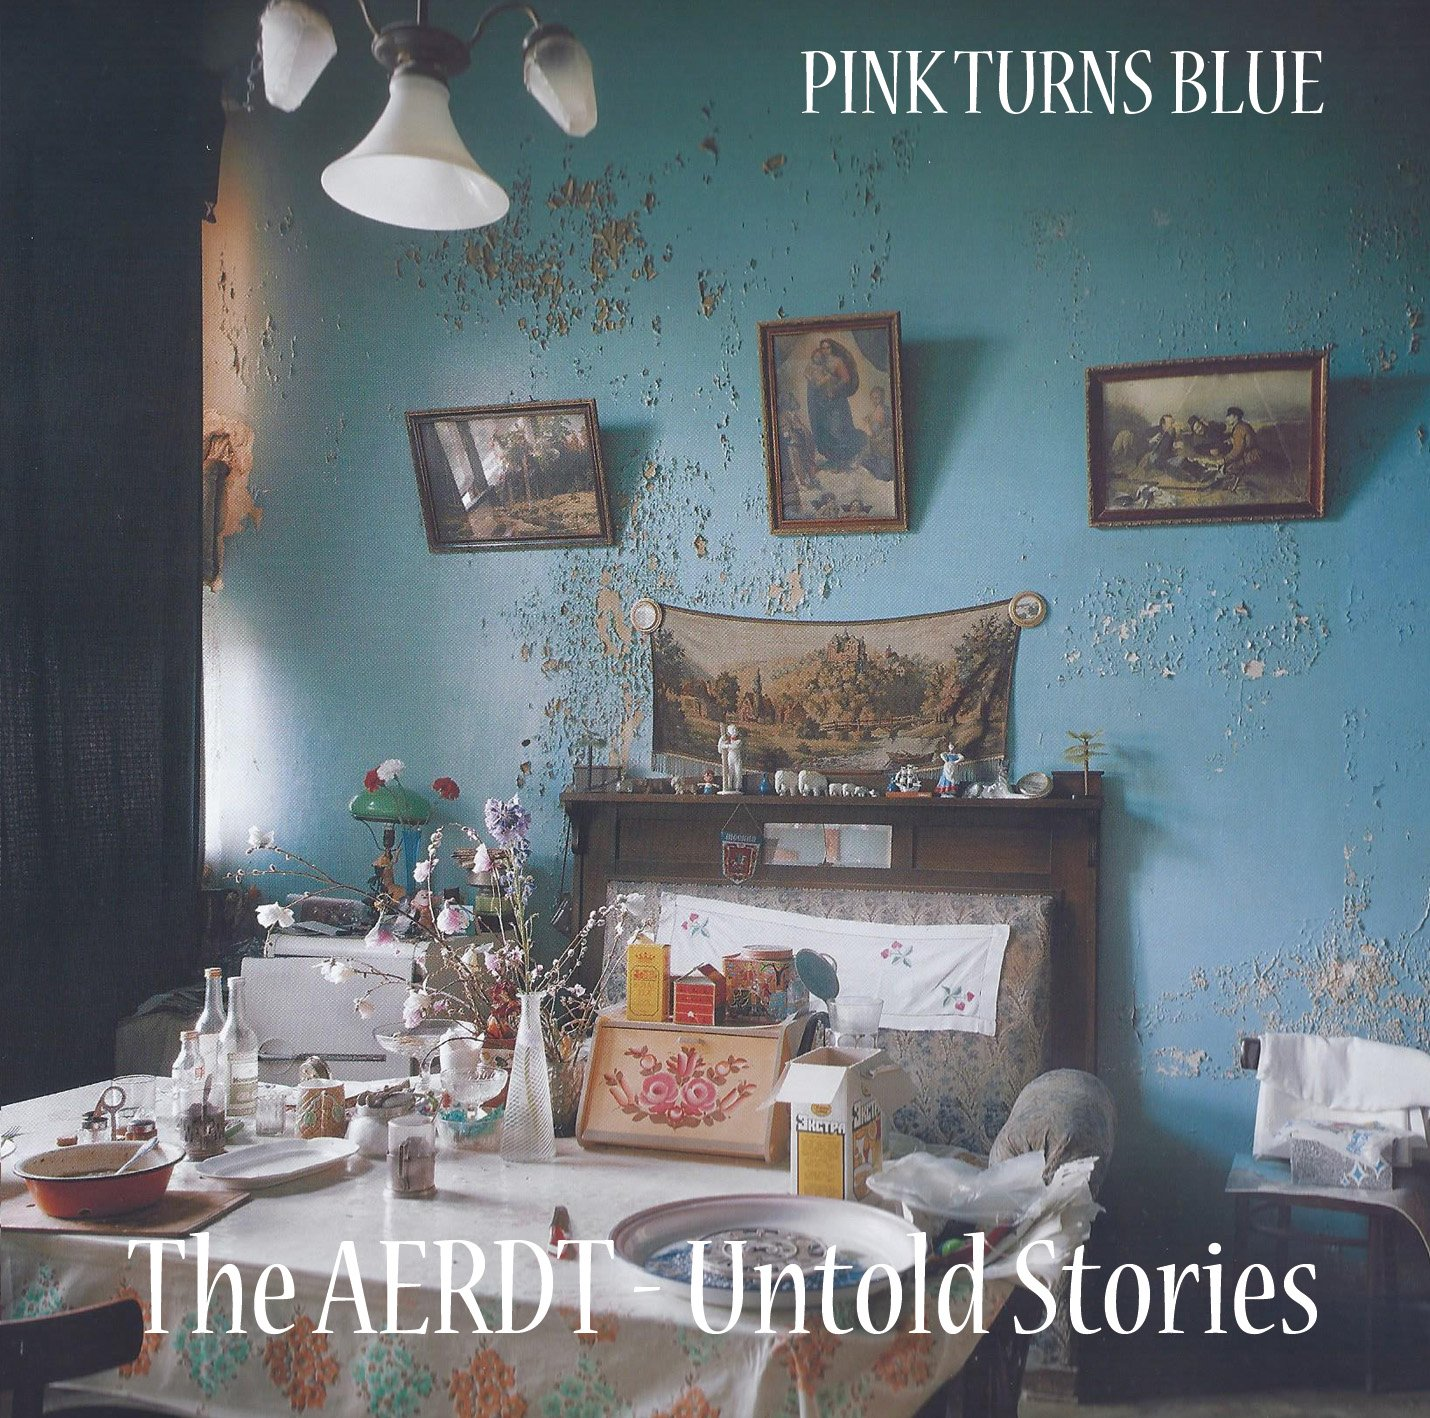 PTB2016-TheAERDT-UntoldStories-Cover300dpi